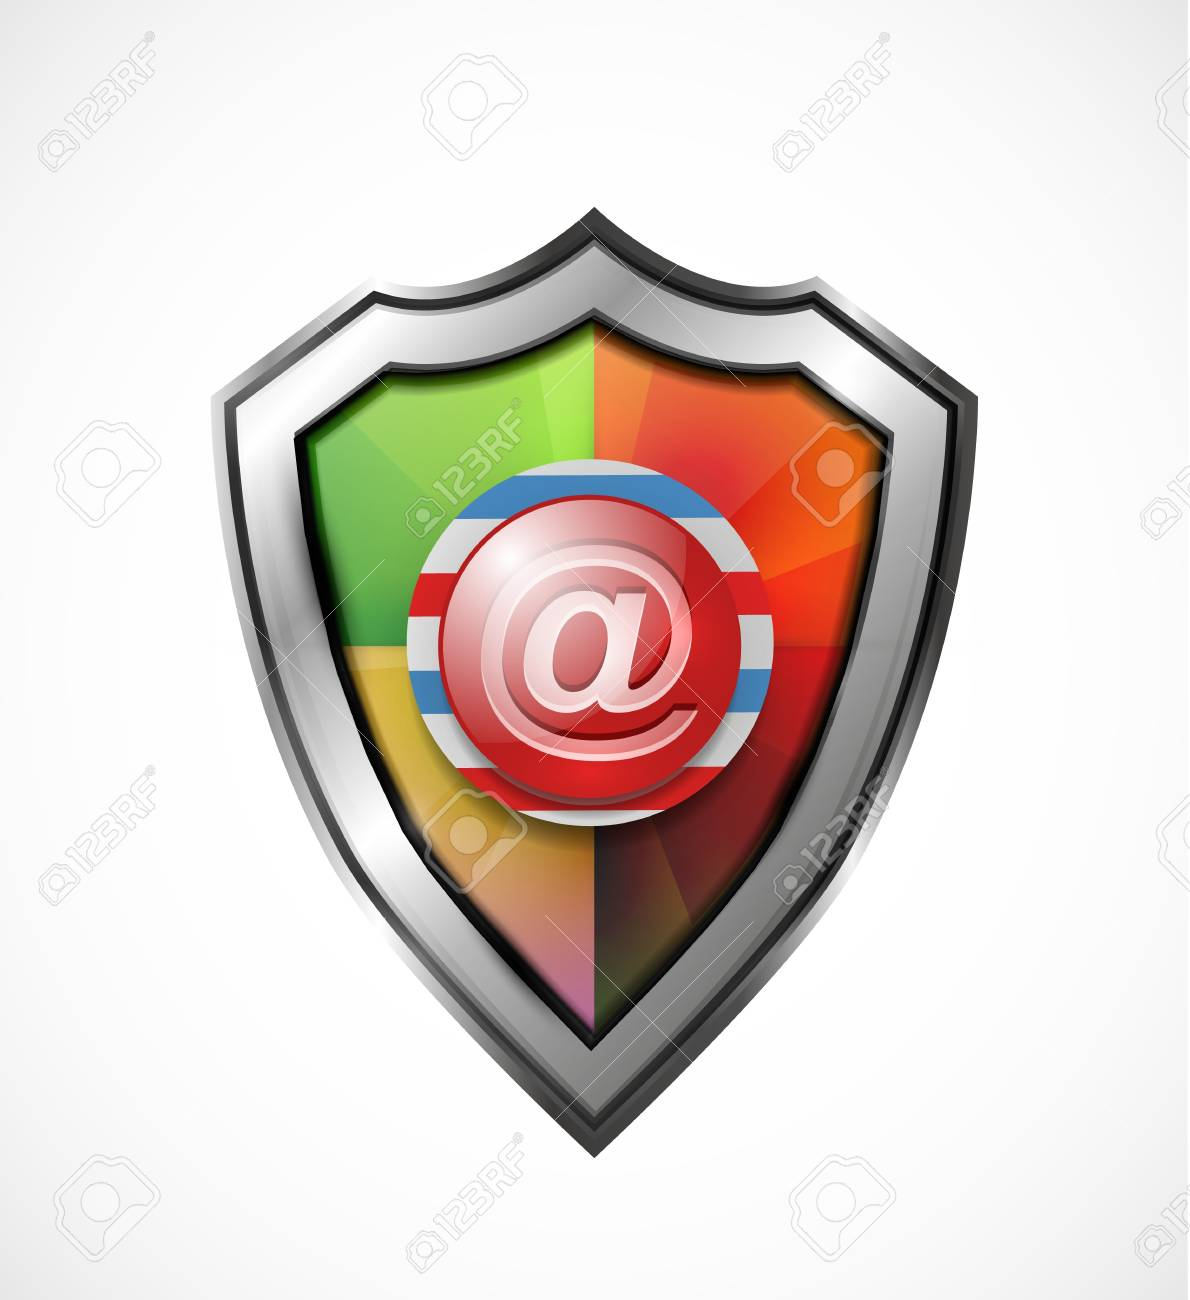 Email protection icon   shield Stock Vector - 19263882